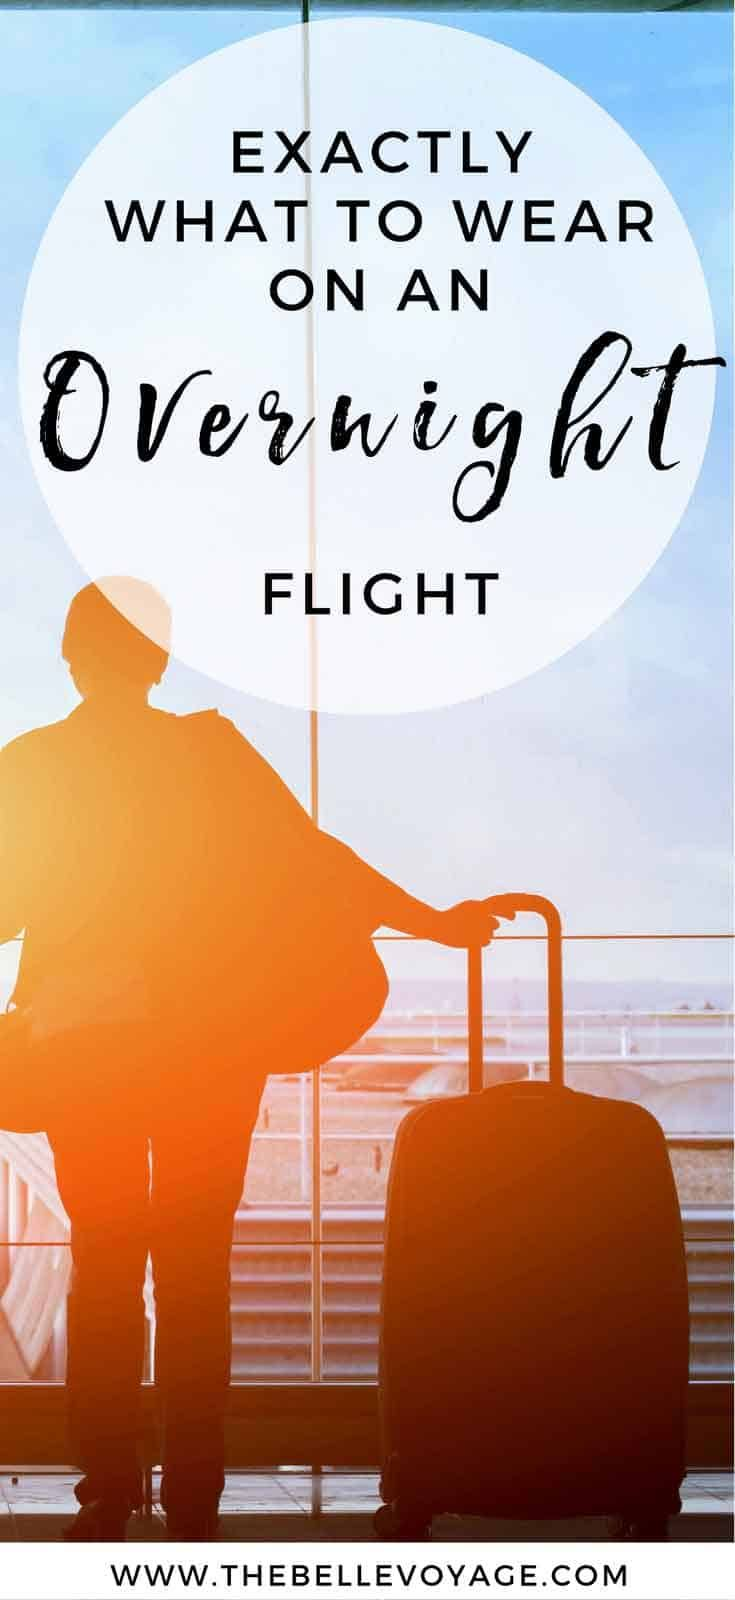 Travel Outfit Ideas   Airplane Outfits   What to wear on a plane   Flying tips   Red Eye flight   Cute and Comfortable Plane Travel Outfits   Outfits for Long Flights #travel #outfit #whattowear